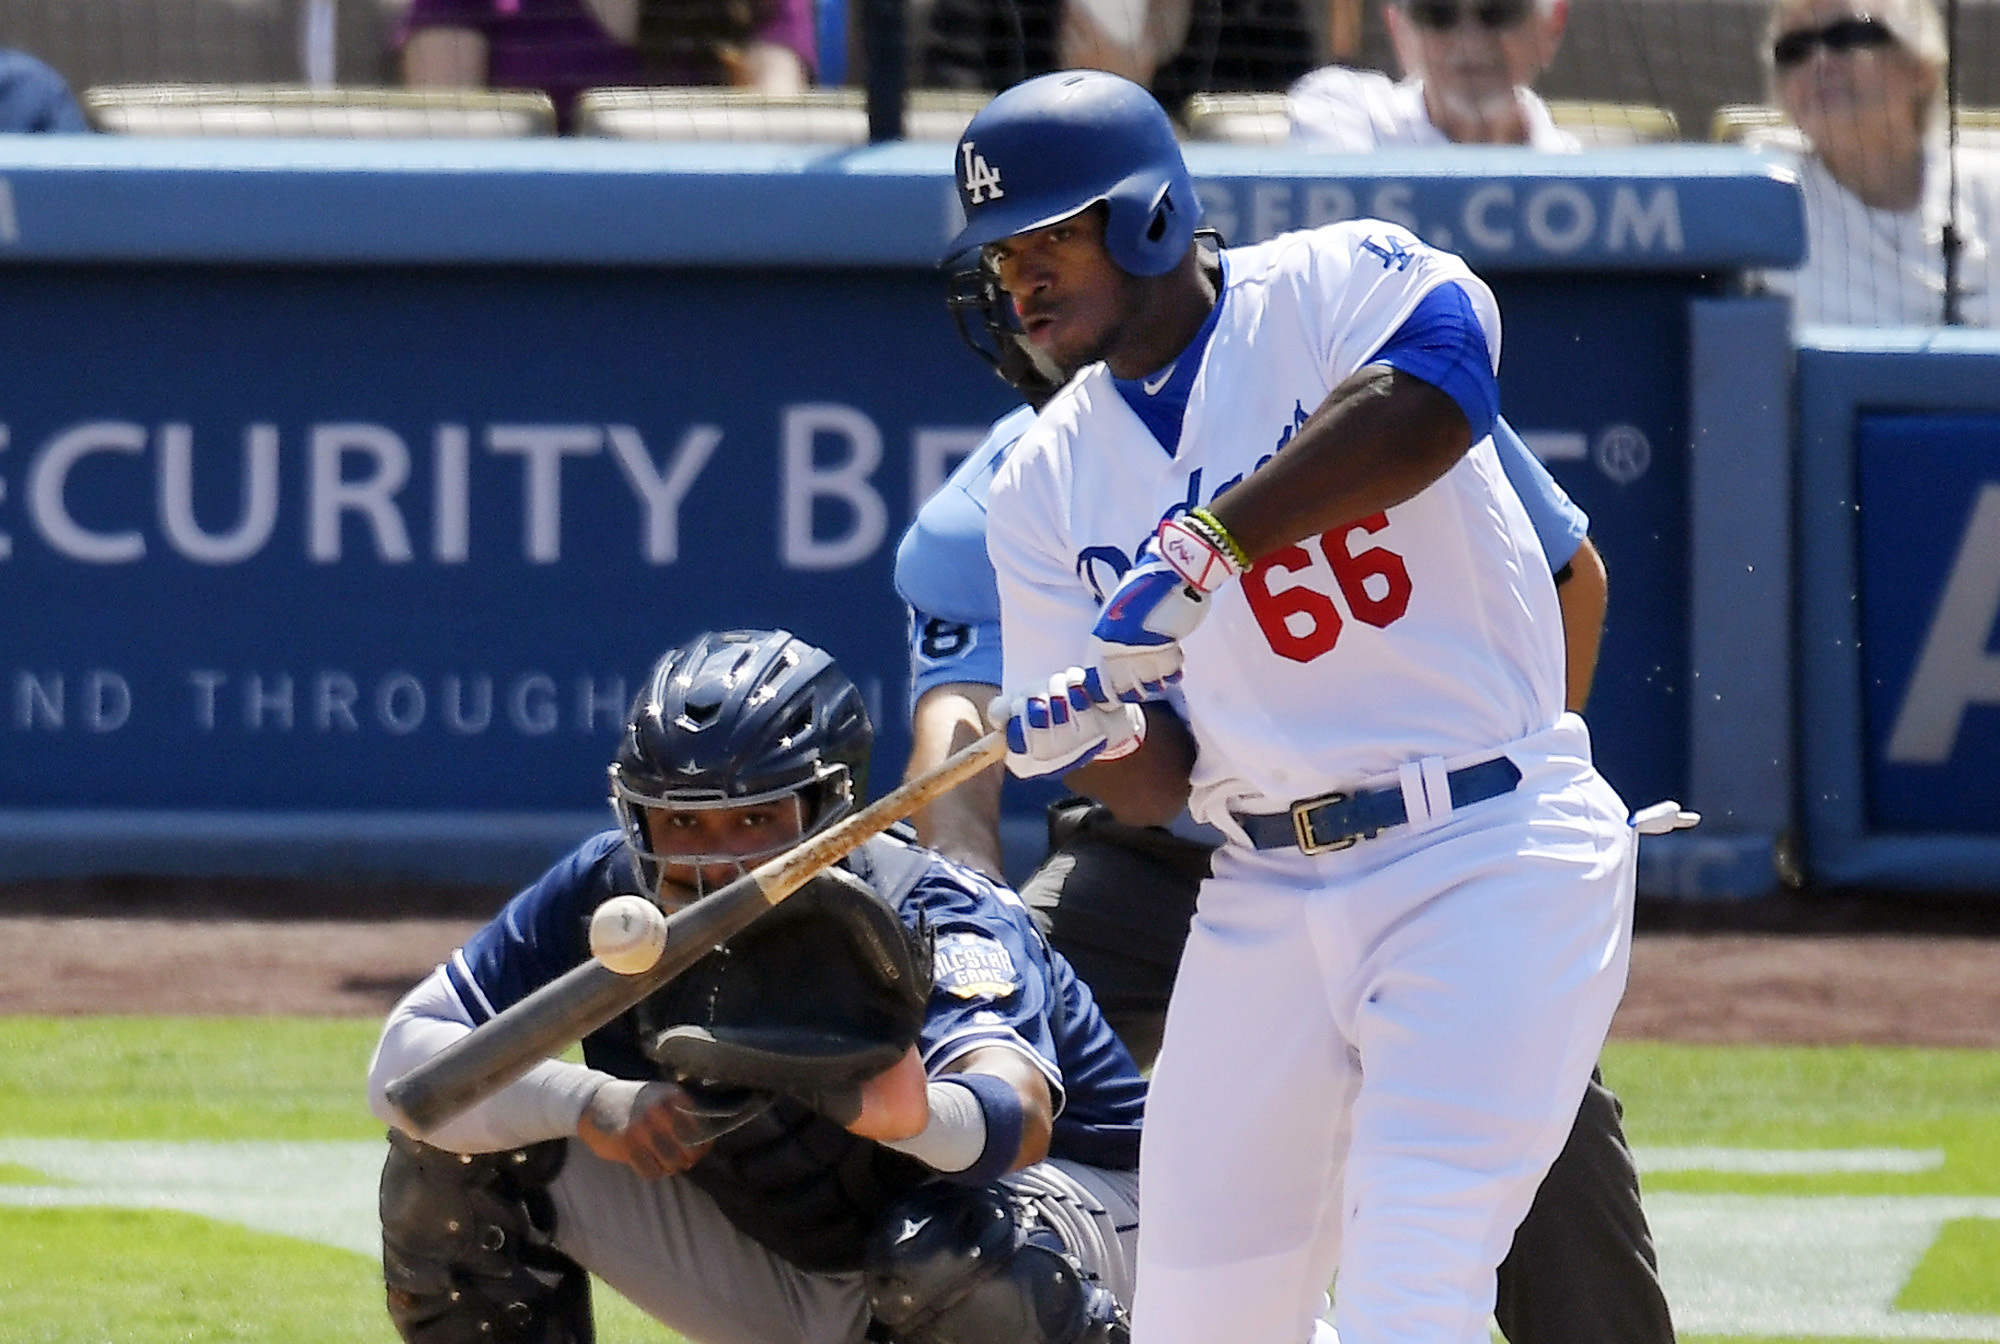 Los Angeles Dodgers' Yasiel Puig, right, hits a three-run home run as San Diego Padres catcher Hector Sanchez watches during the third inning of a baseball game, Sunday, Sept. 4, 2016, in Los Angeles. (AP Photo/Mark J. Terrill)